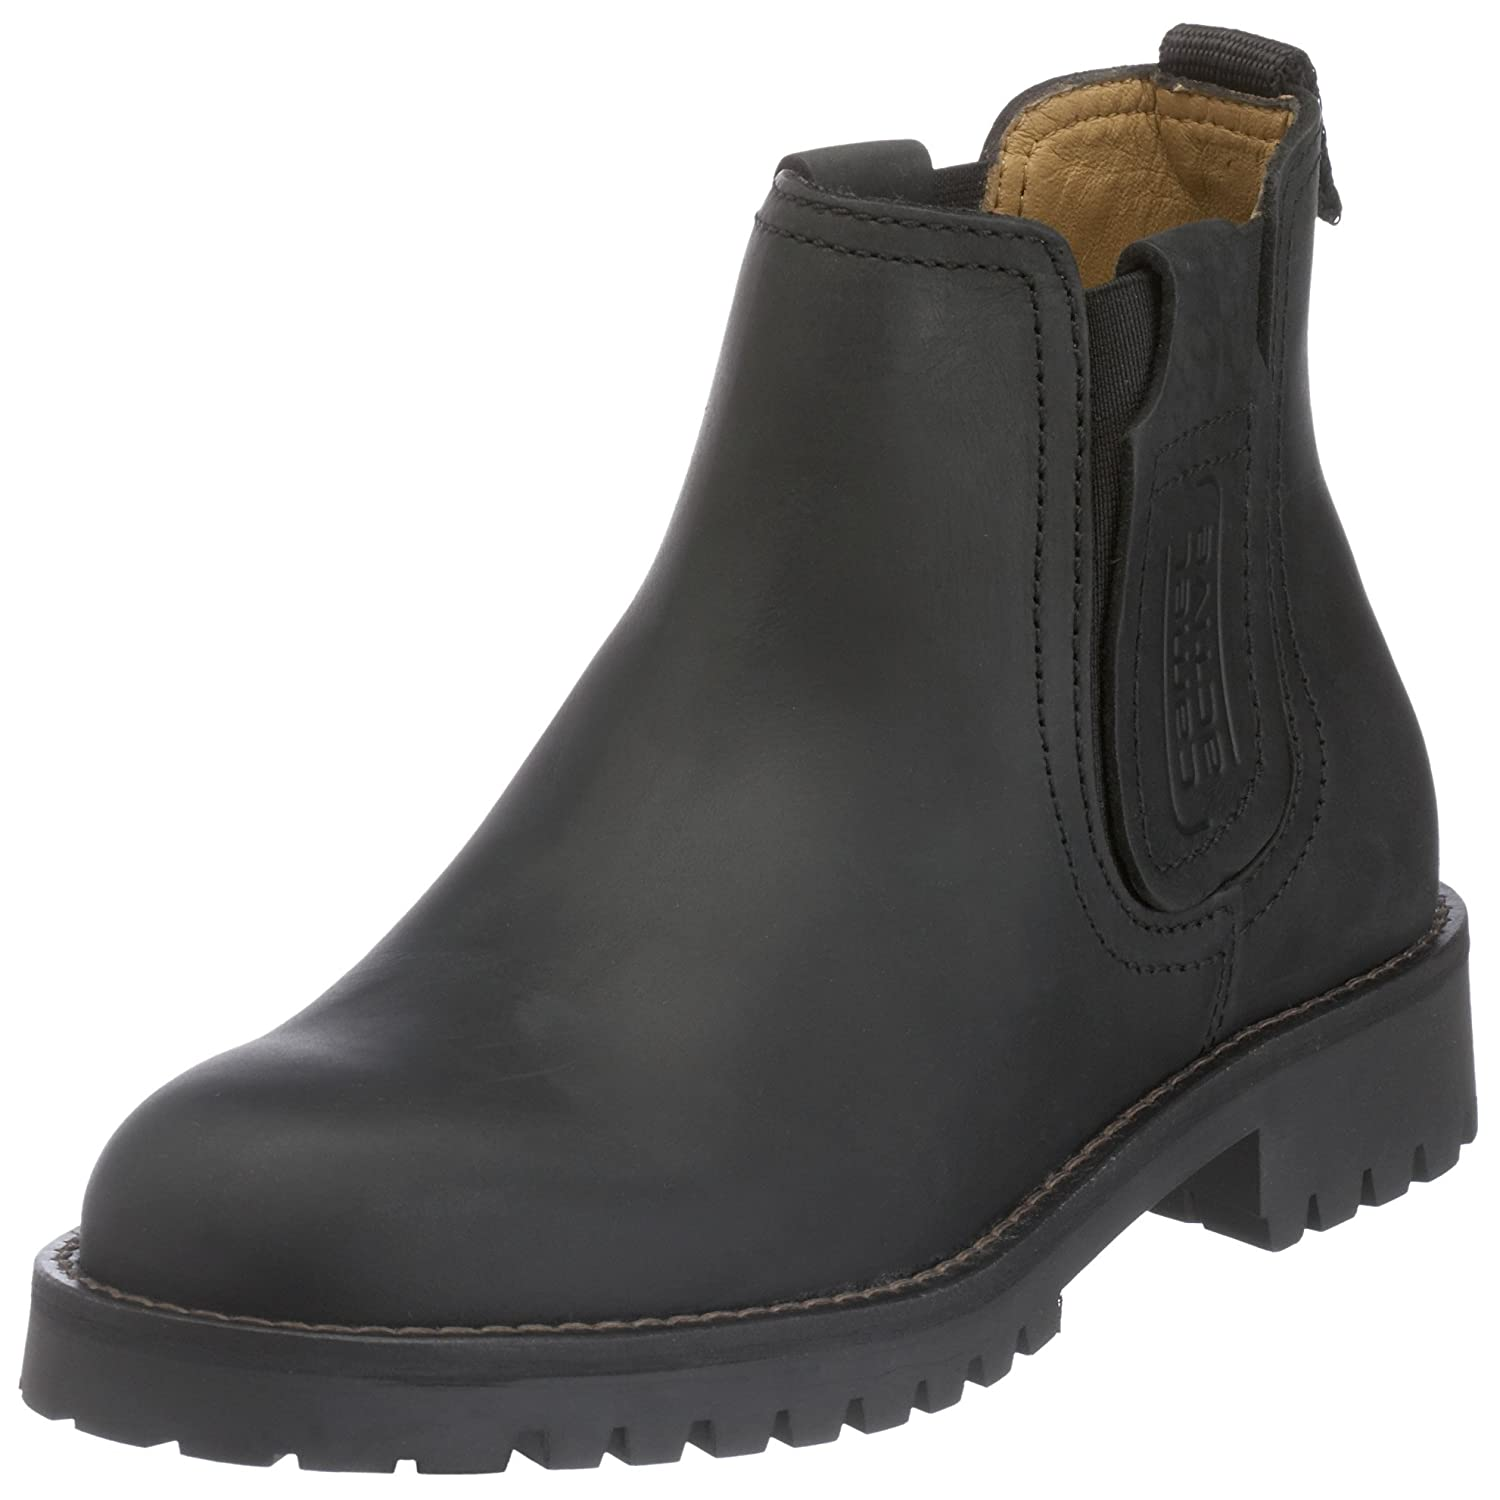 camel active 2191201 , Damen Stiefel, EU 37 (UK 4) schwarz